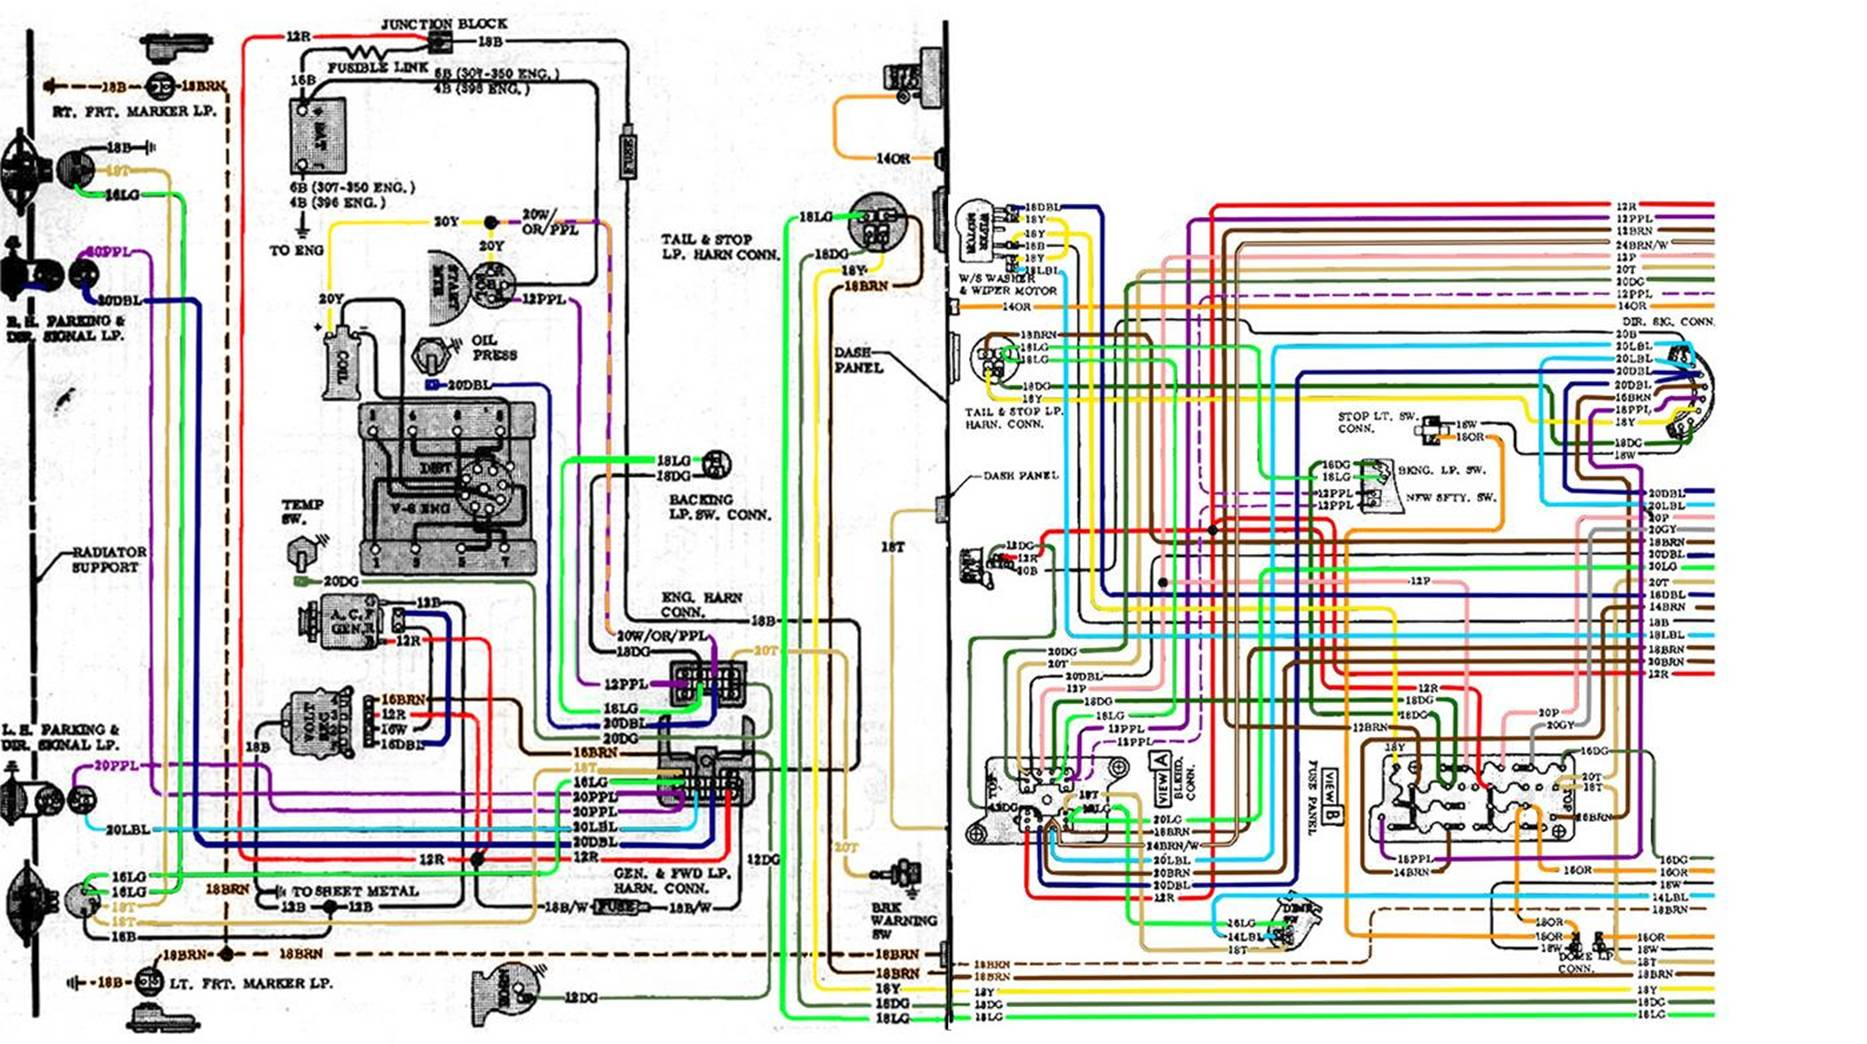 72 Camaro Wiring Diagram Free For You 1967 Painless Harness 1972 Chevrolet C20 Schematics Rh Ksefanzone Com Stock 73 94